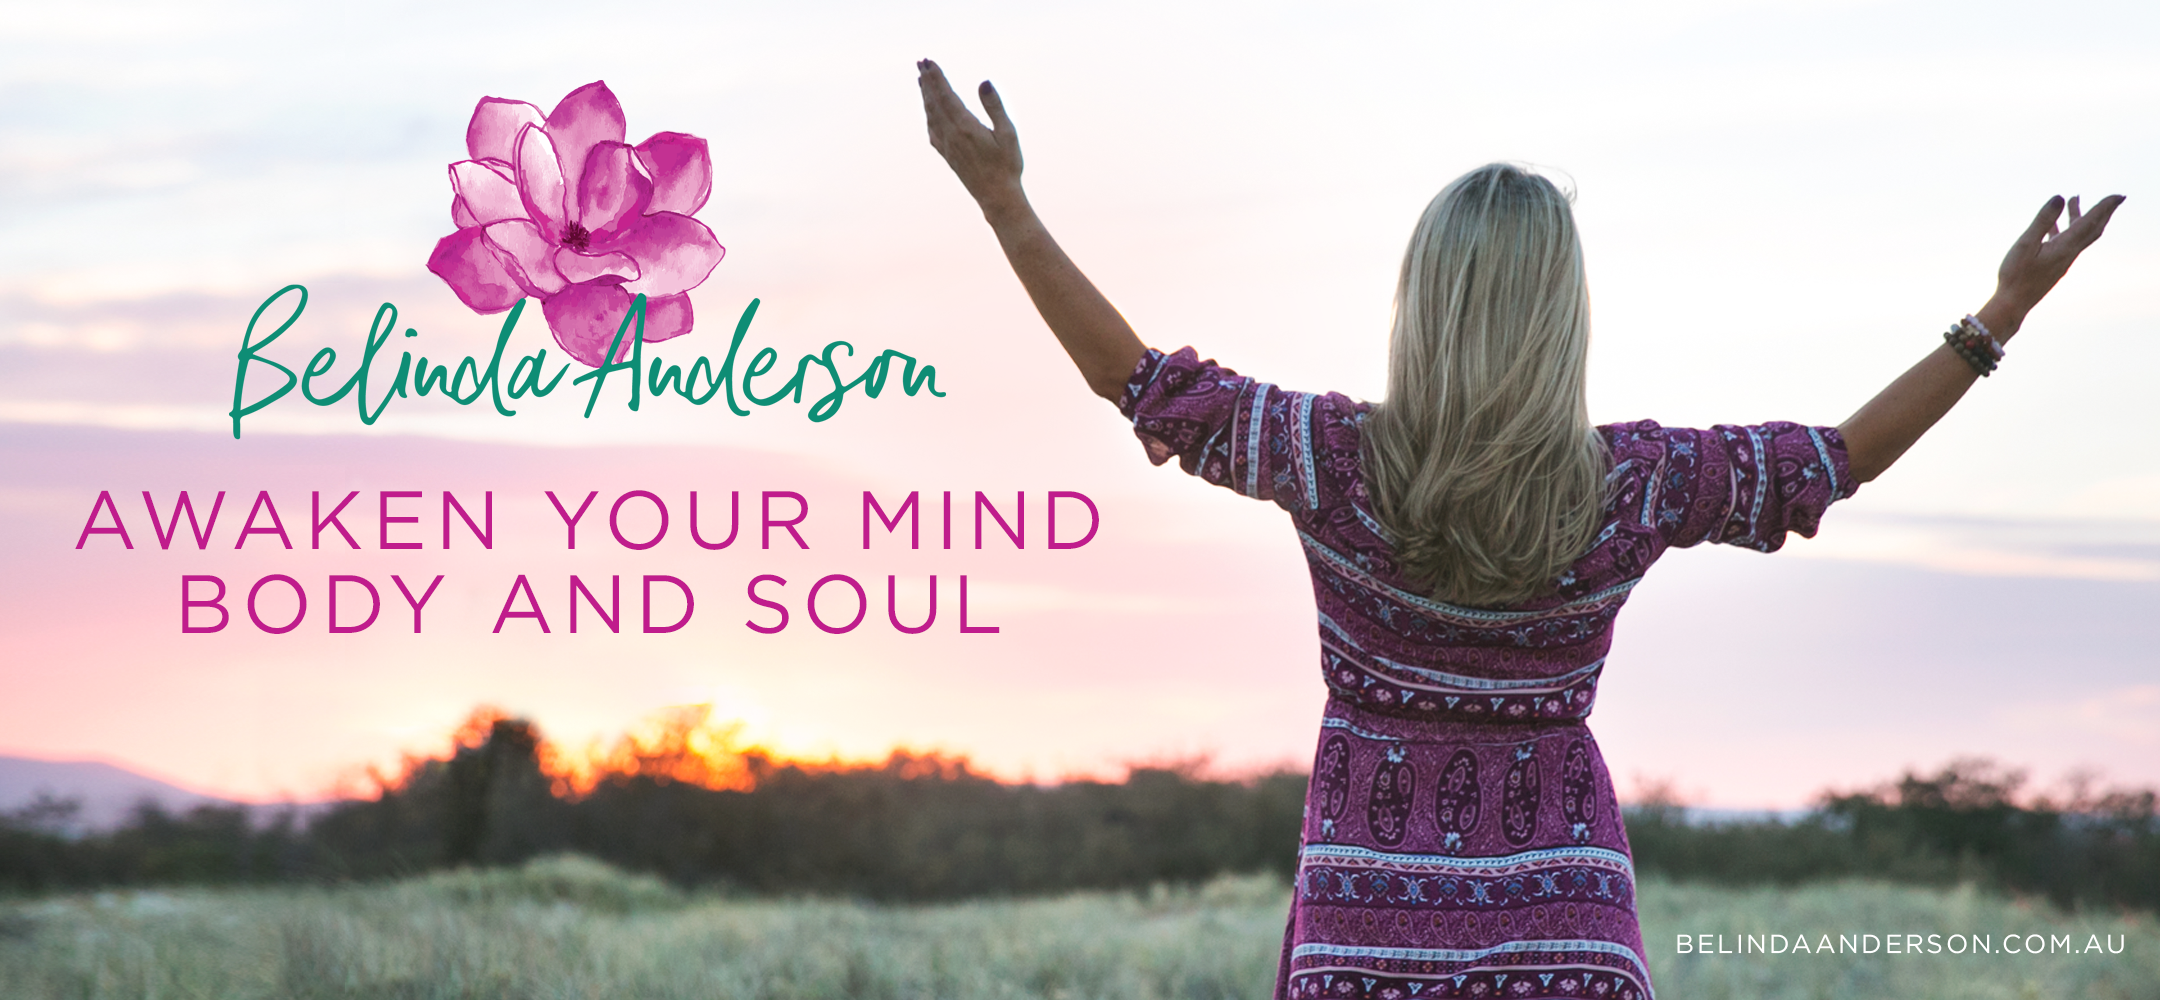 Empowering journeys to awaken your mind, body and soul